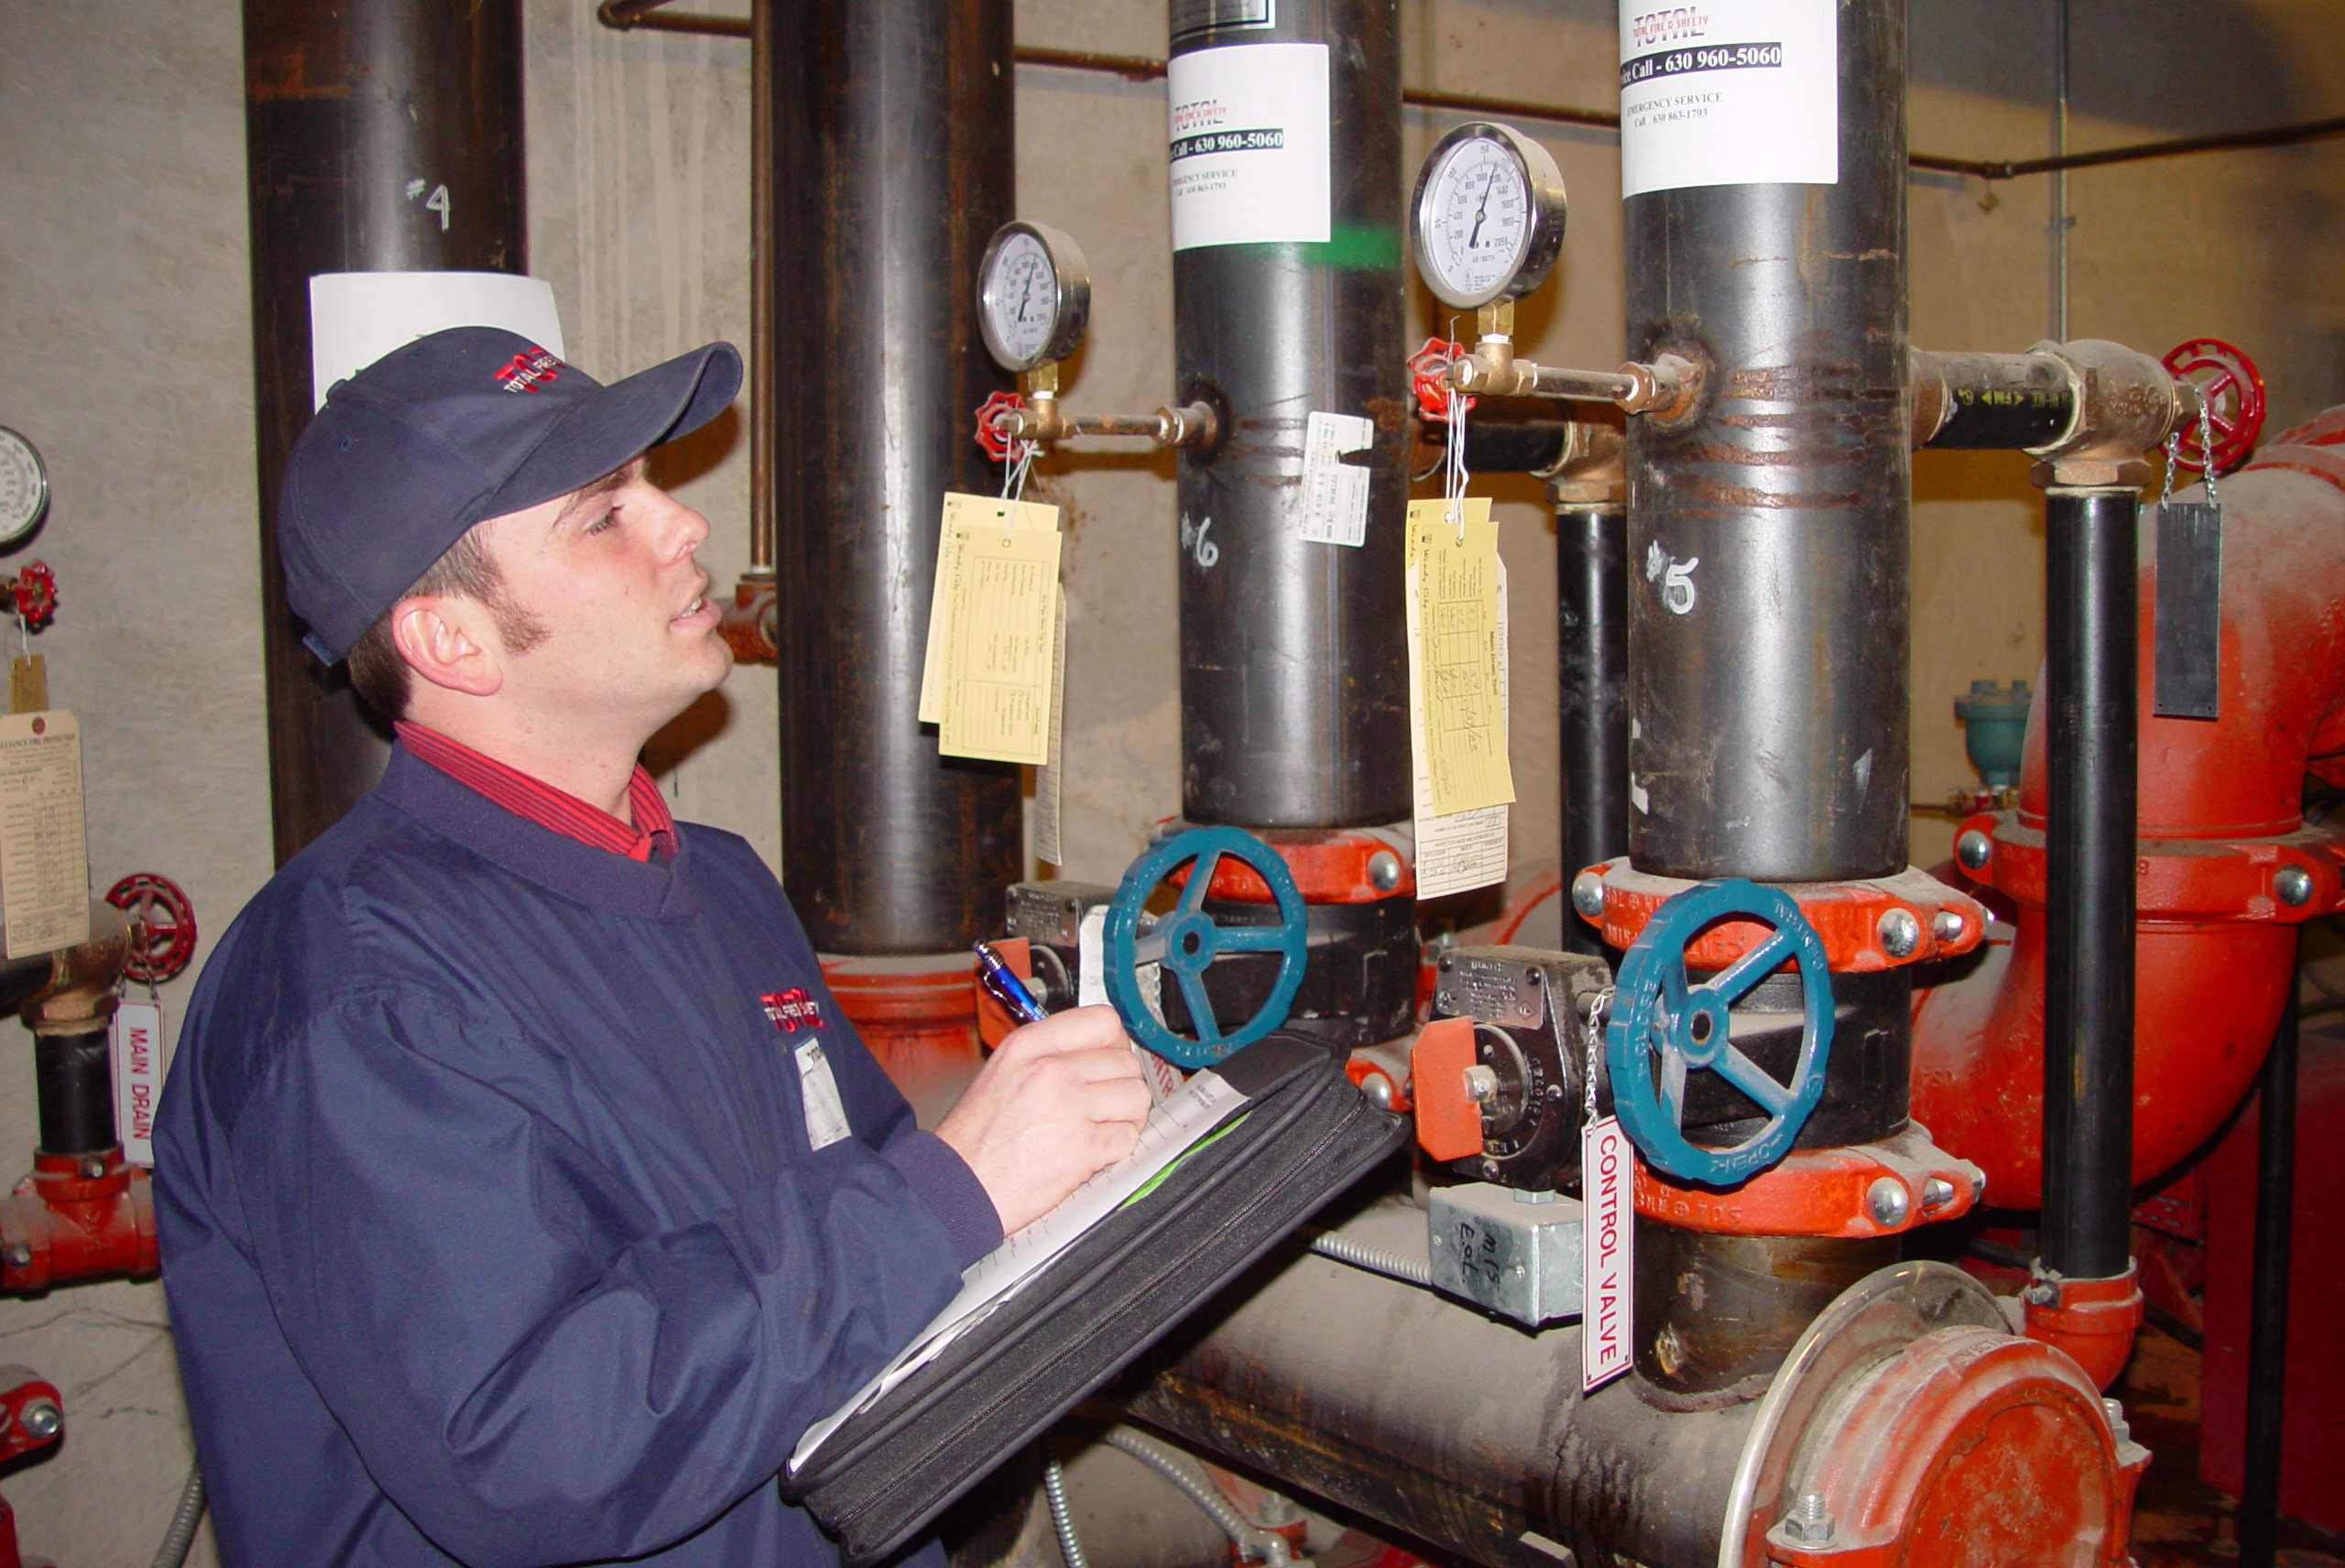 Total fire safety blog blog archive the ghost ship A 1 inspections